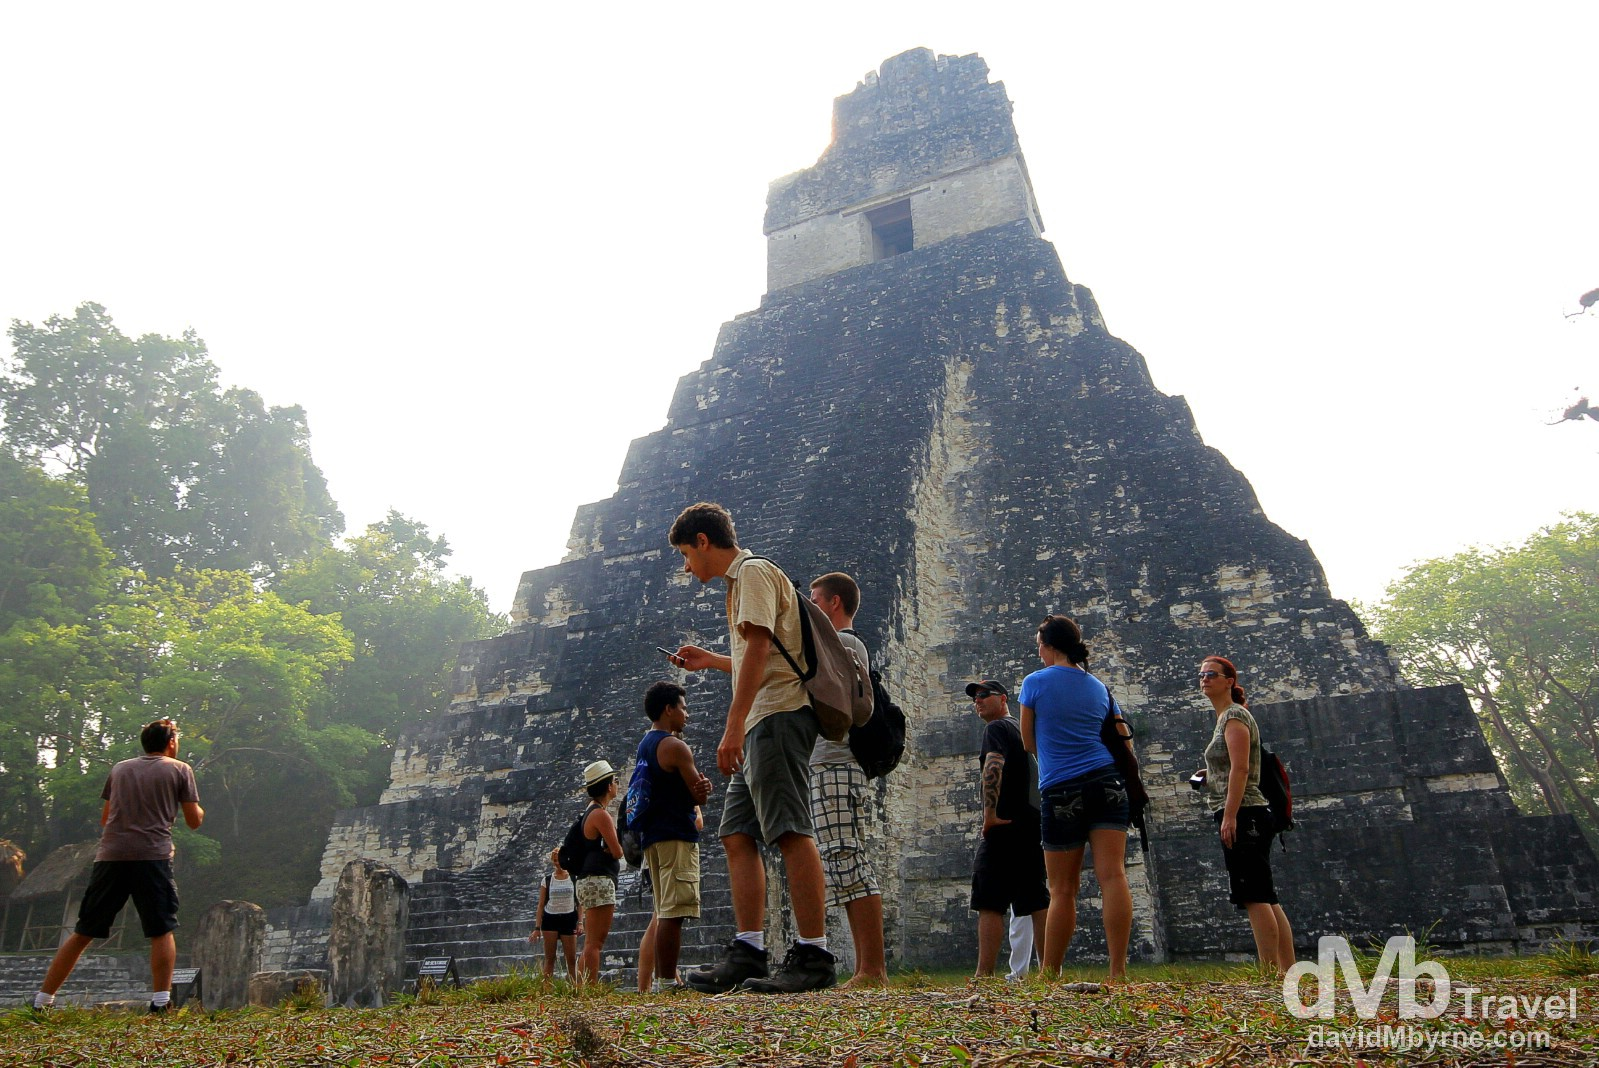 People in front of Temple 1, Temple of the Grand Jaguar in The Gran Plaza, Tikal Mayan ruins, Tikal National Park, northern Guatemala. May 17th 2013.